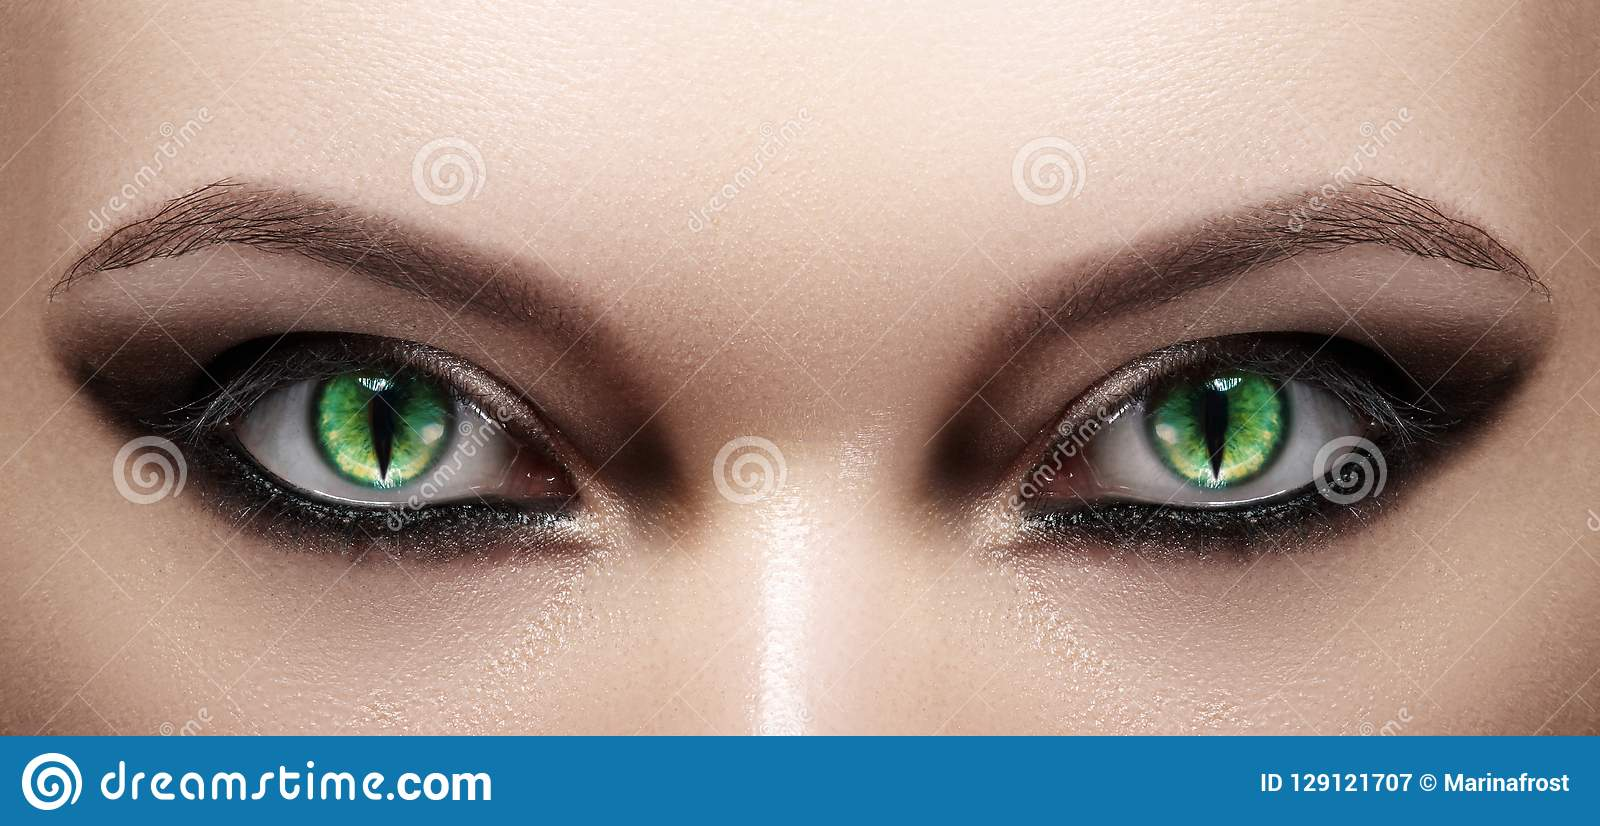 Makeup How-to: The Extreme Cat Eye | more.com |Makeup Eyeliner Cat Eyes